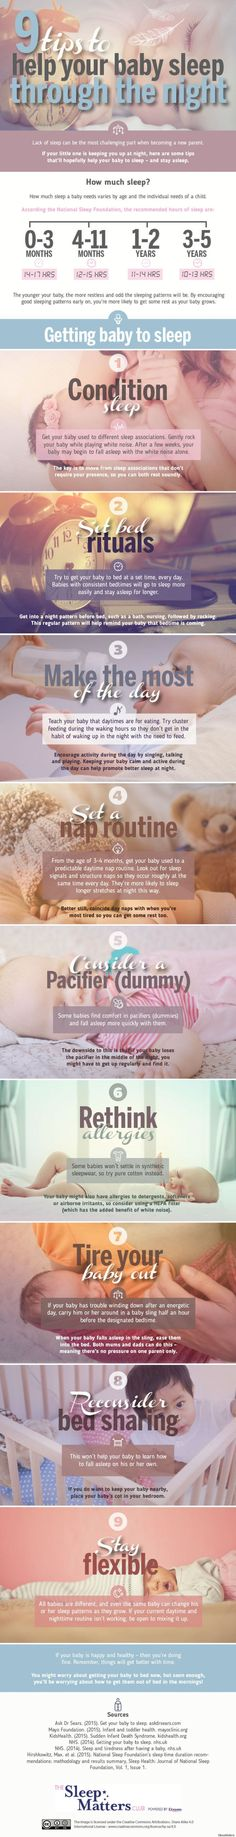 Nine Tips To Help Your Baby Sleep Through The Night